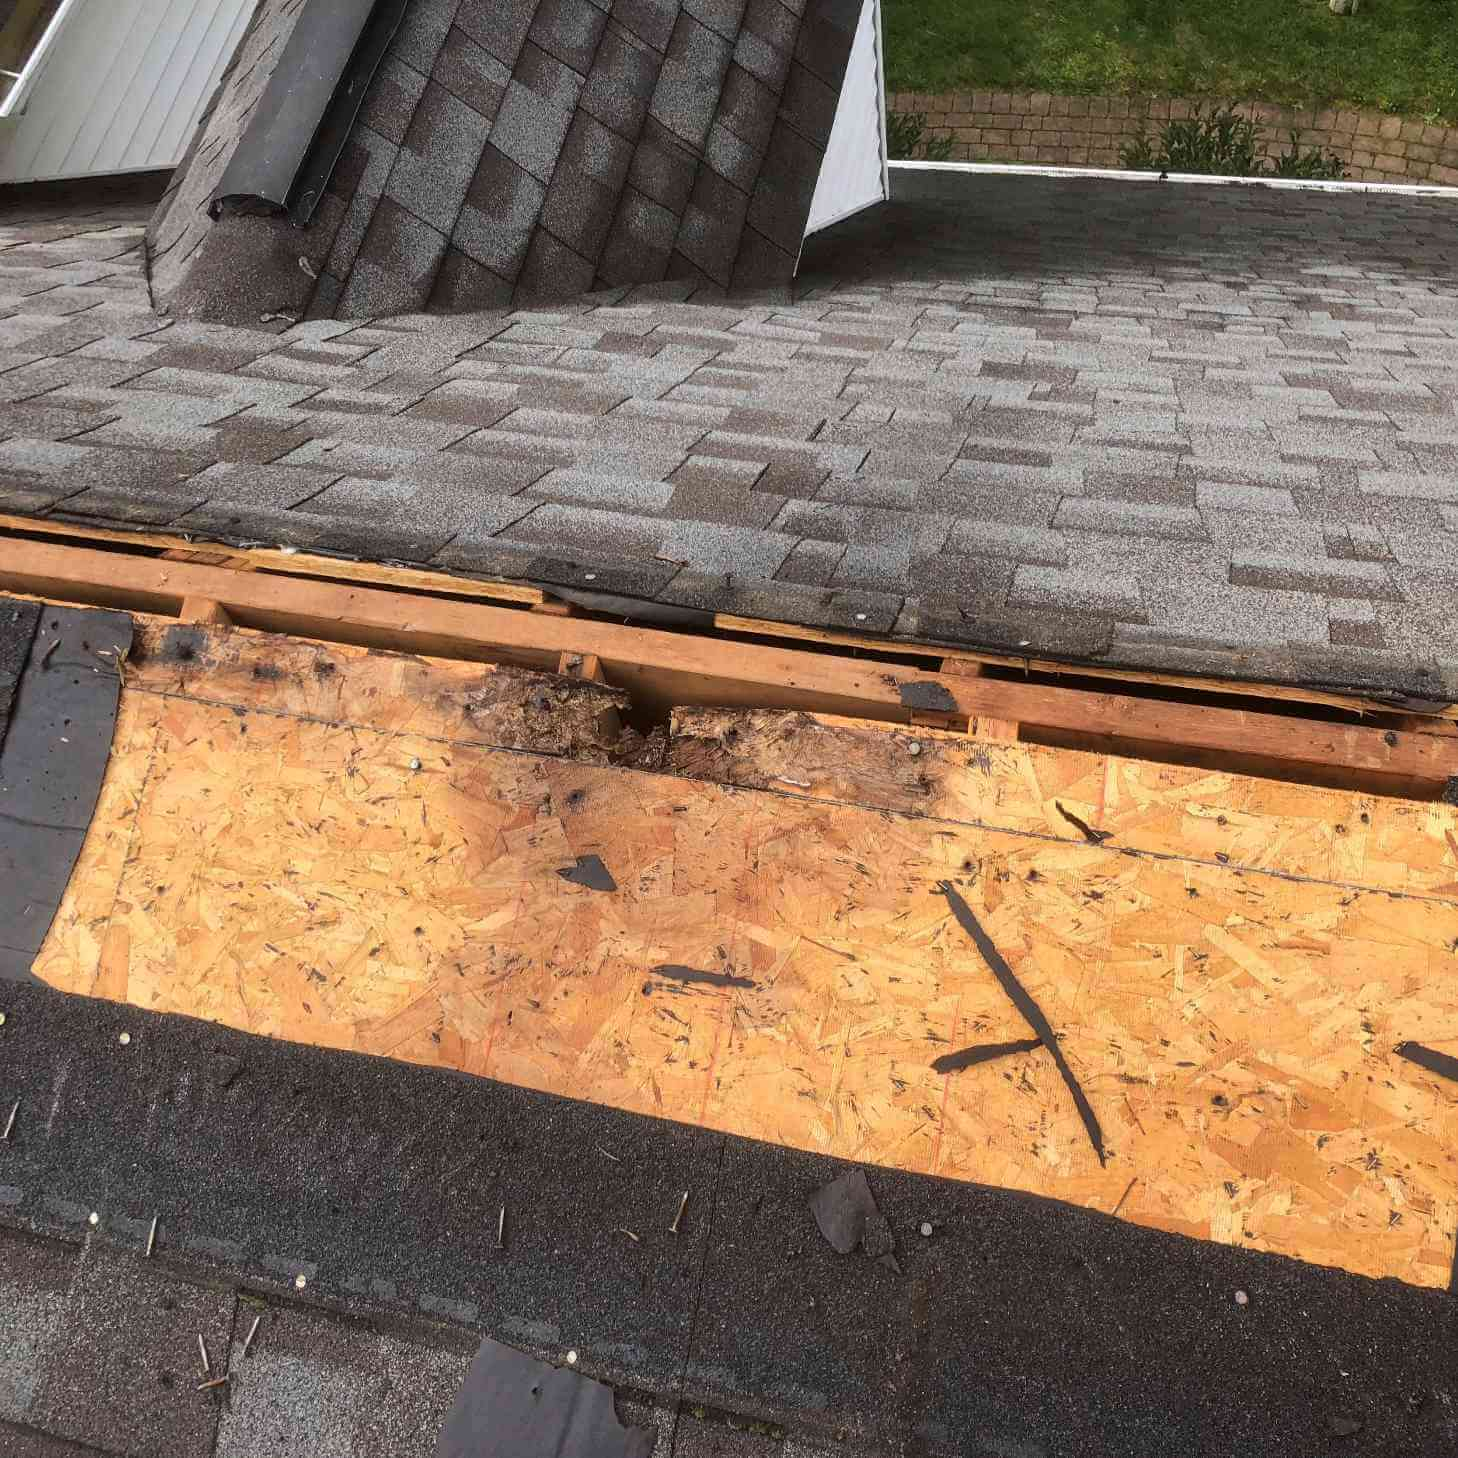 Roof Damage Repair Company in Cleveland Ohio